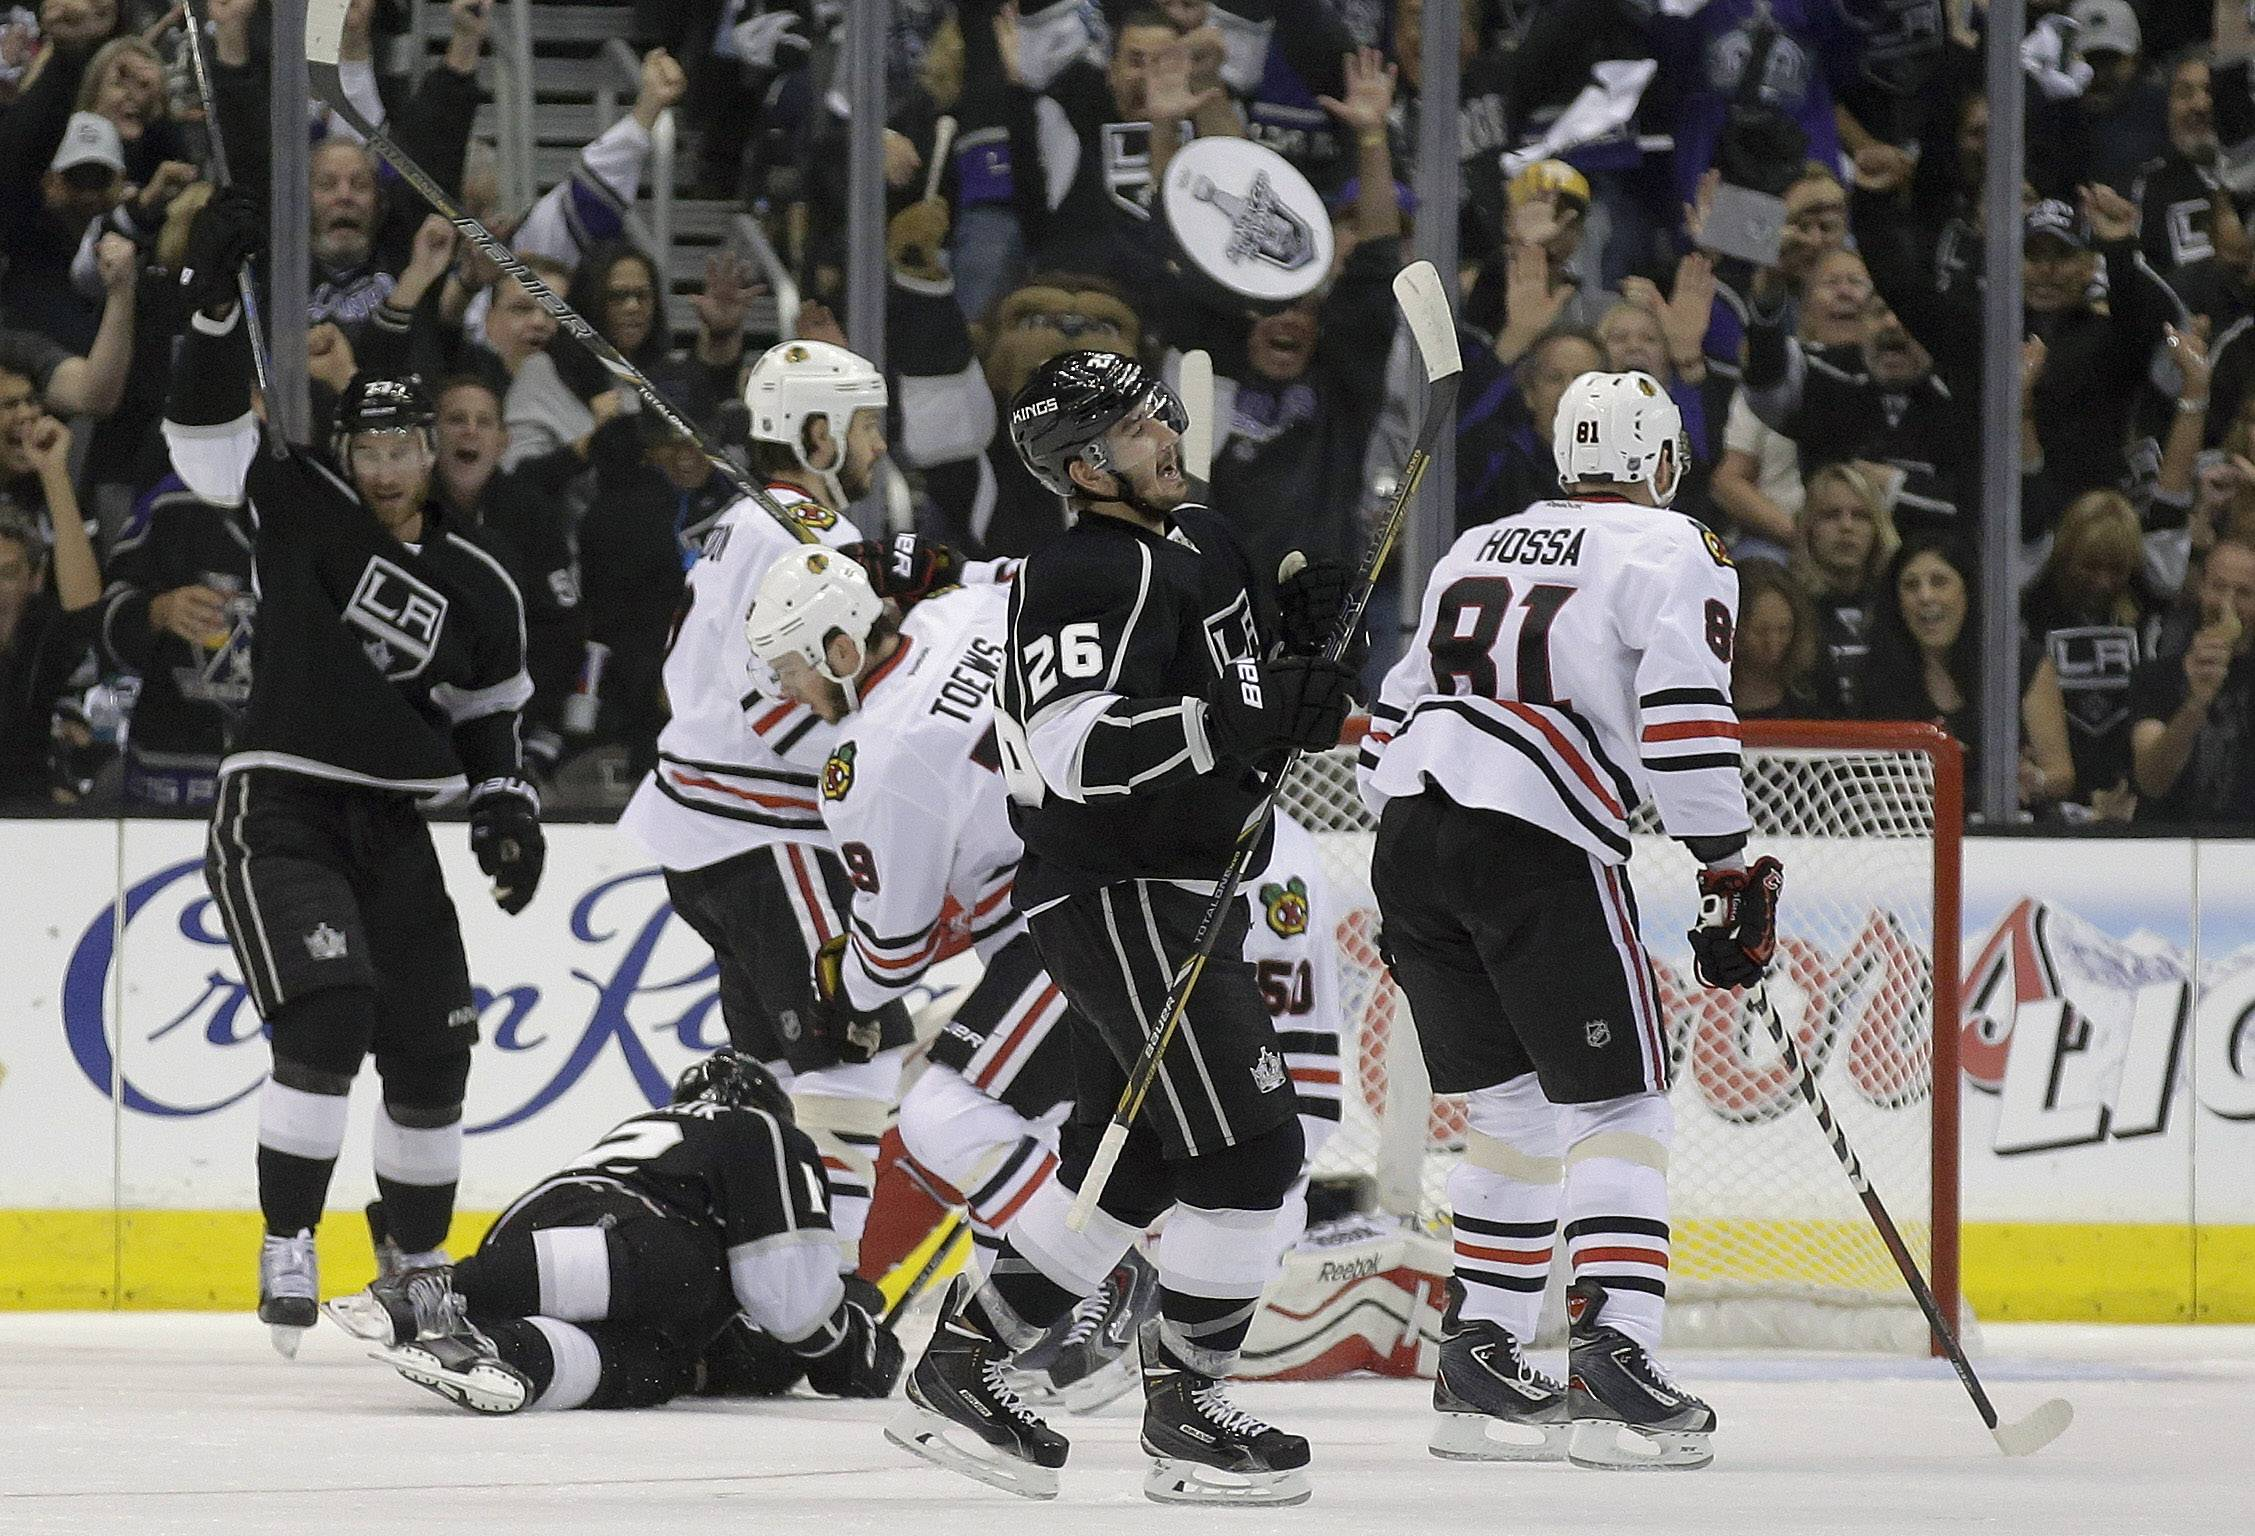 Los Angeles Kings defenseman Slava Voynov (26) celebrates his goal against the Chicago Blackhawks during the first period of Game 3 of the Western Conference finals of the NHL hockey Stanley Cup playoffs in Los Angeles, Saturday, May 24, 2014.